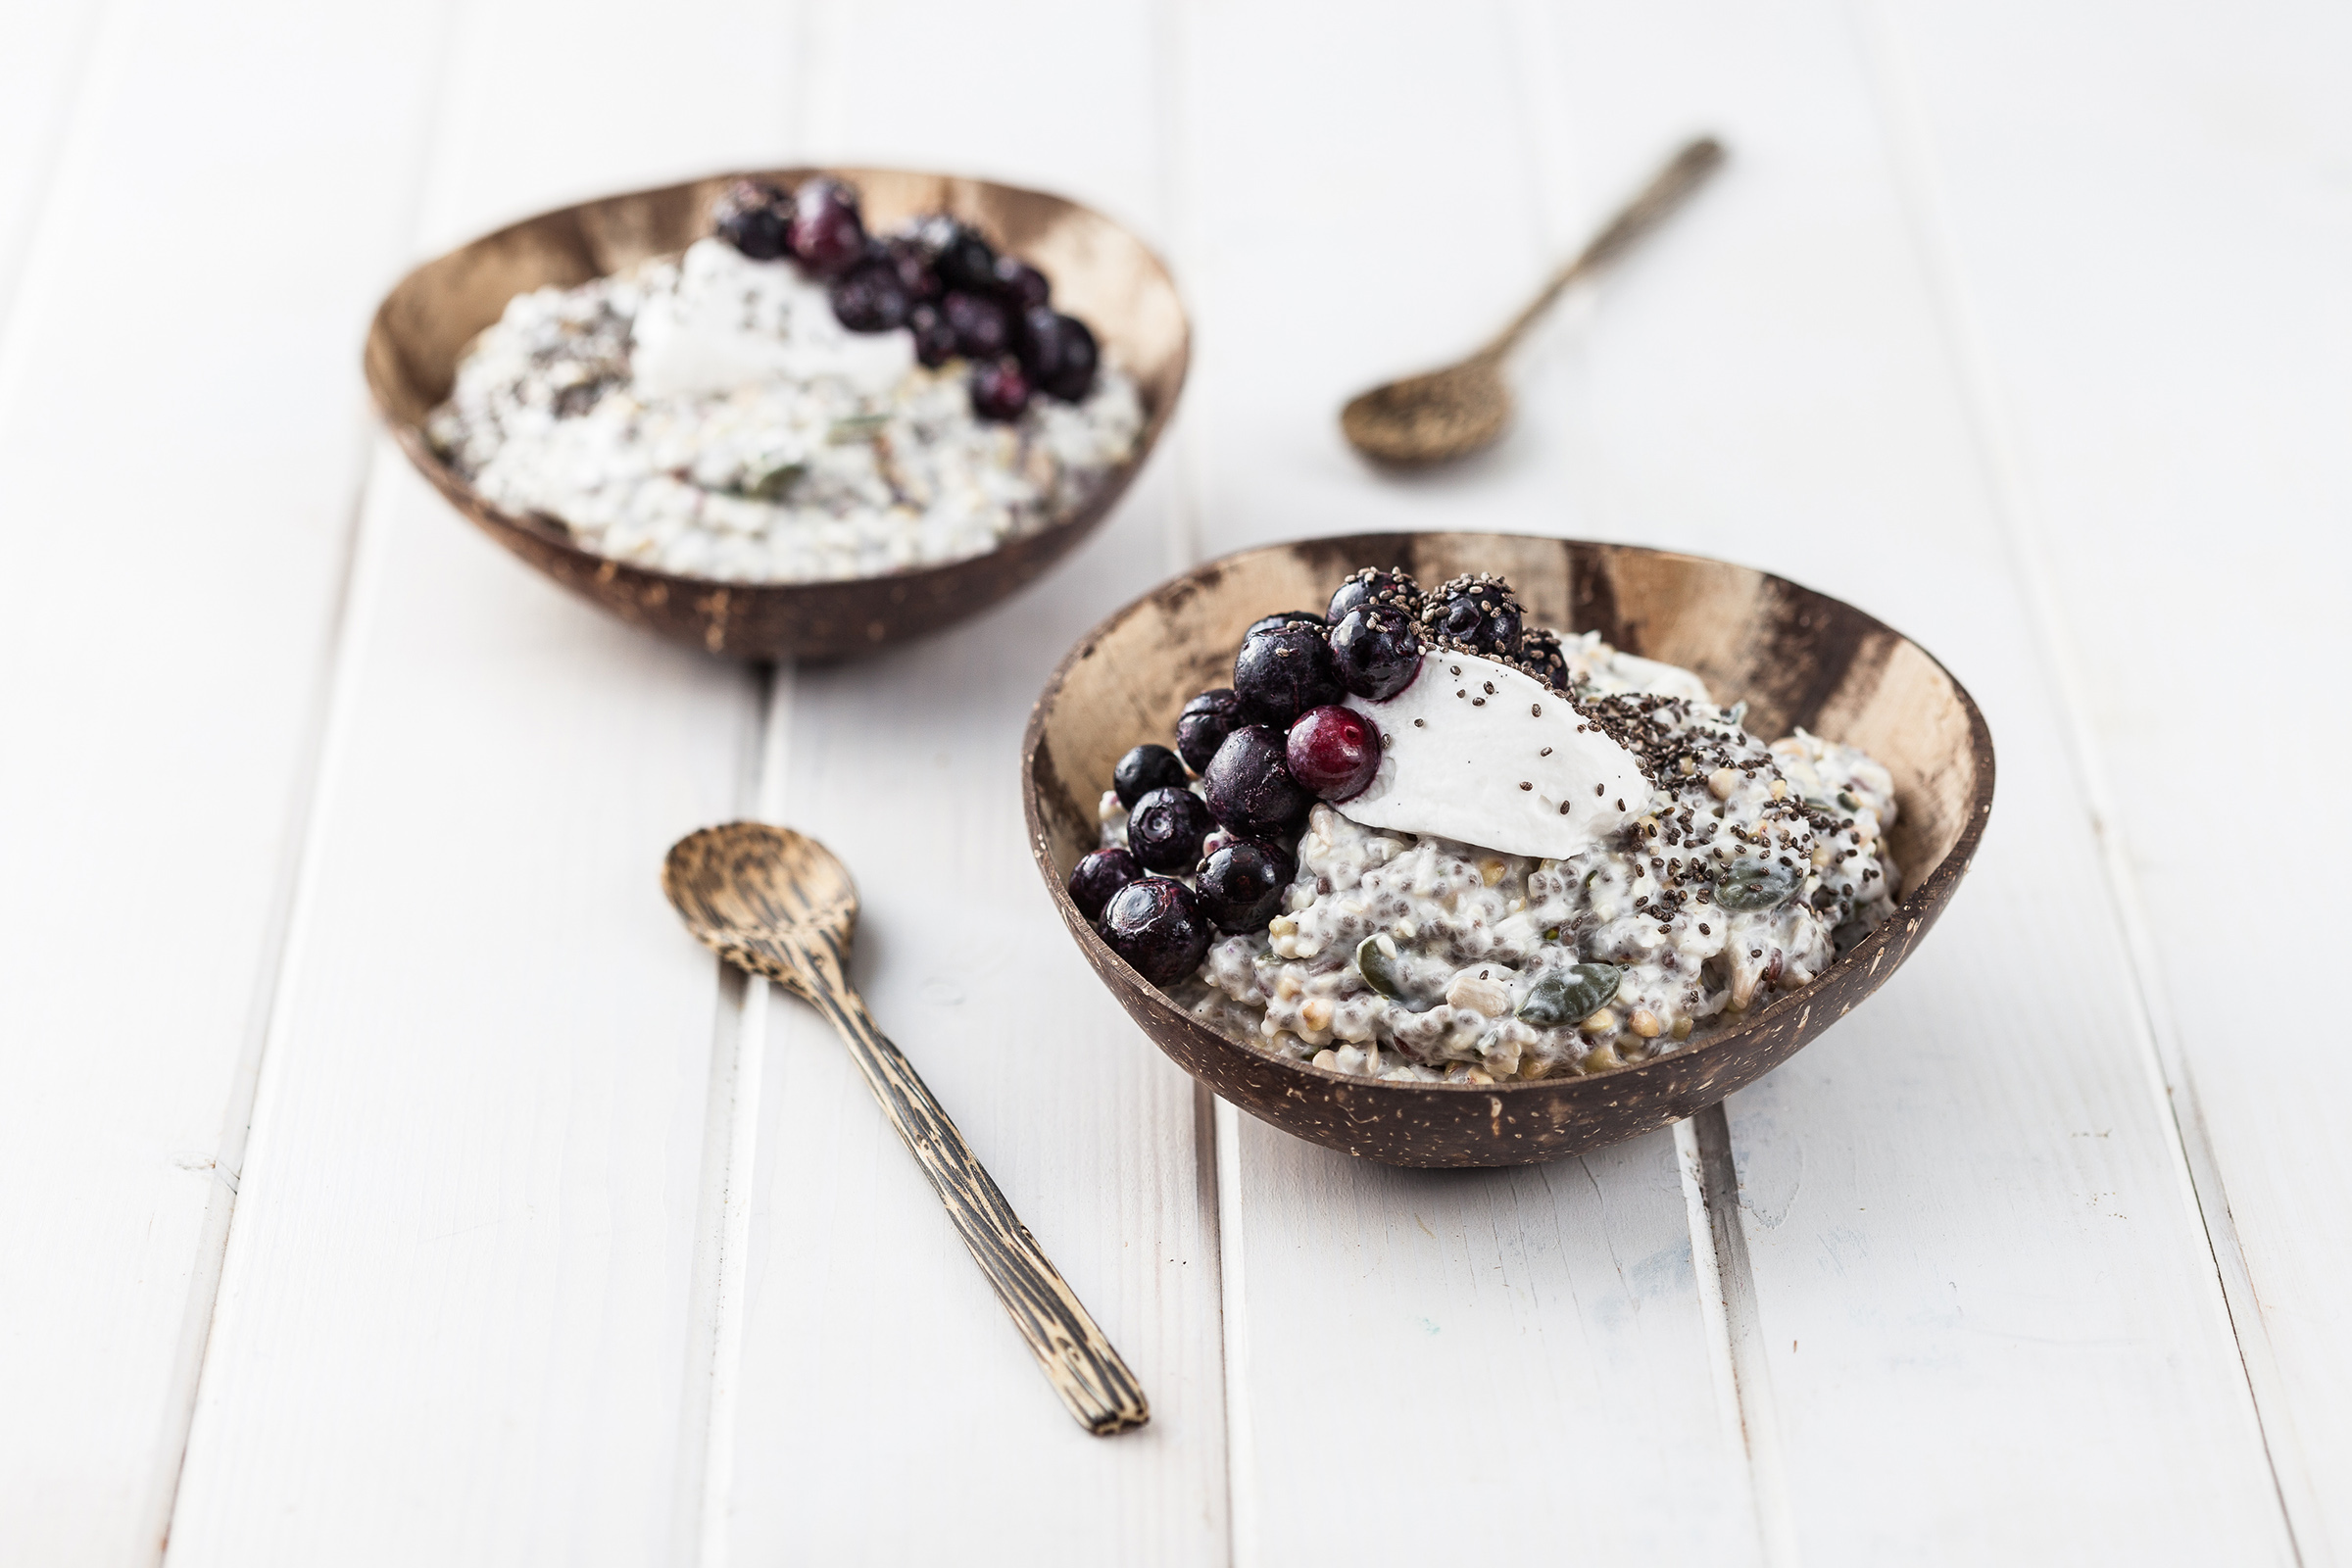 Vegan and Gluten Free and Grain Free Bircher Muesli